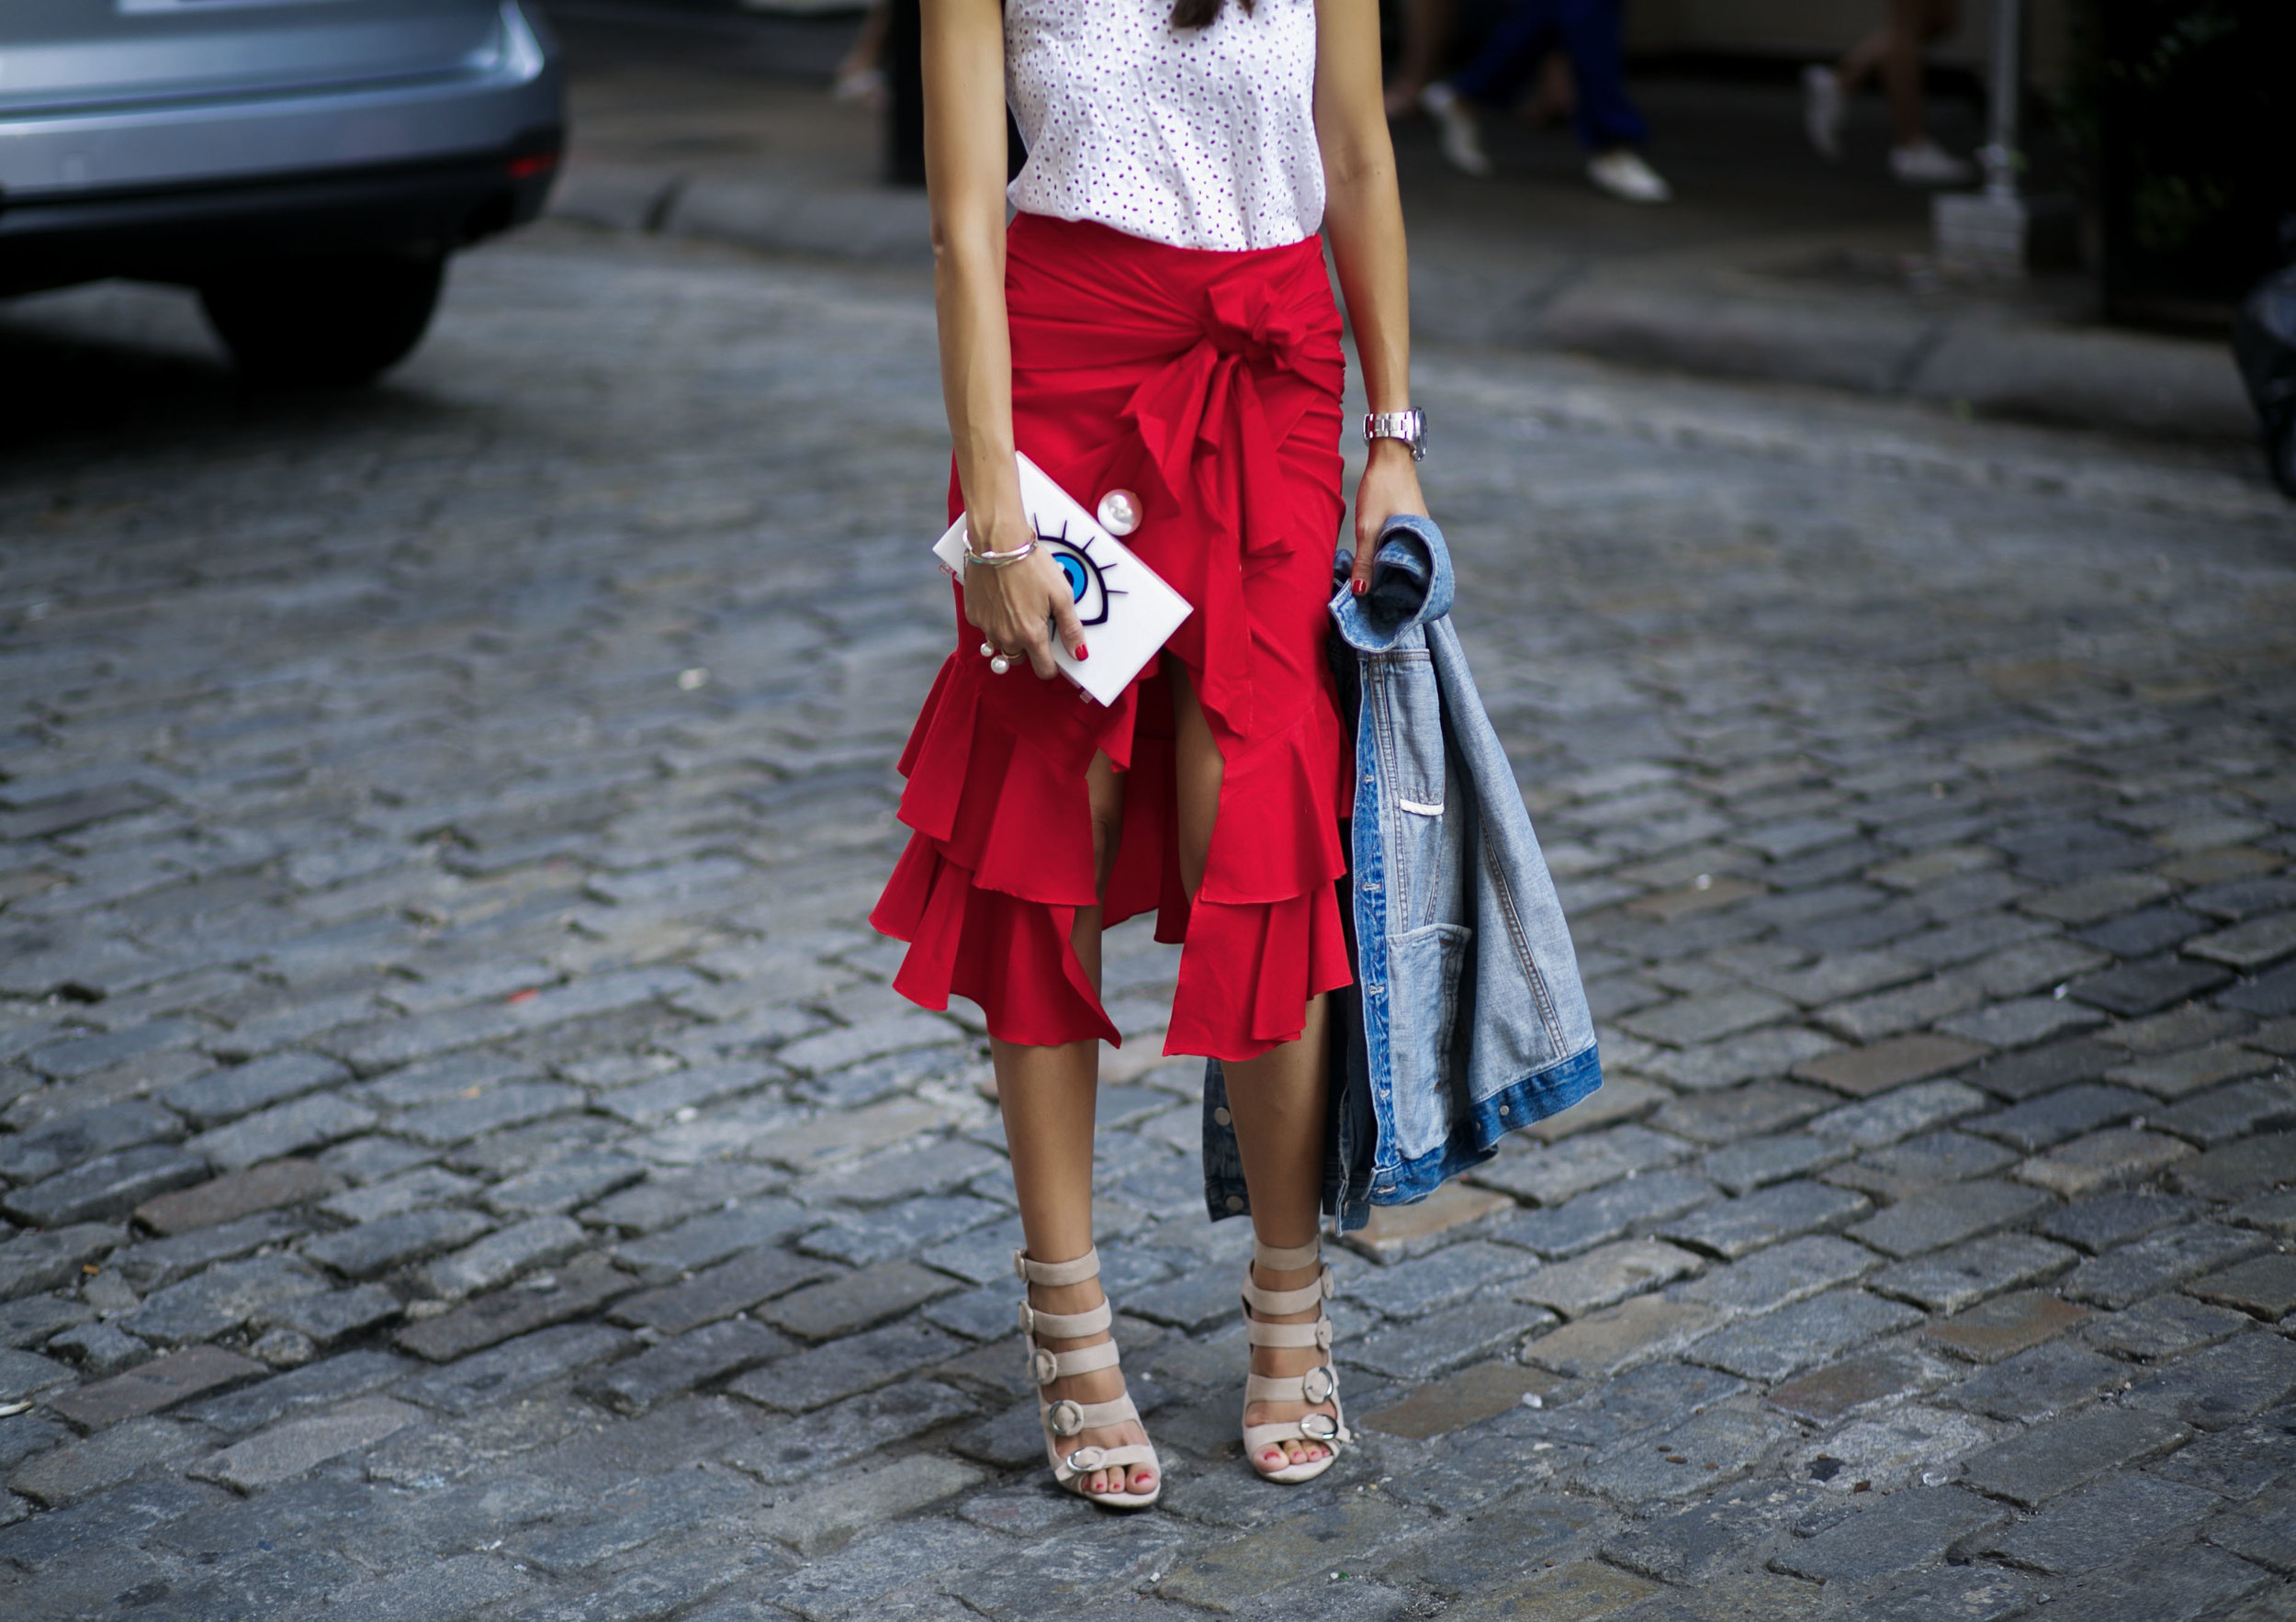 Lola-Basso-Clutch-Intermix-Skirt-Kendal-and-Kylie-Shoes-Fashion-BLogger-Streetstyle-NYFW-Runway-BLogger-Friends.jpg